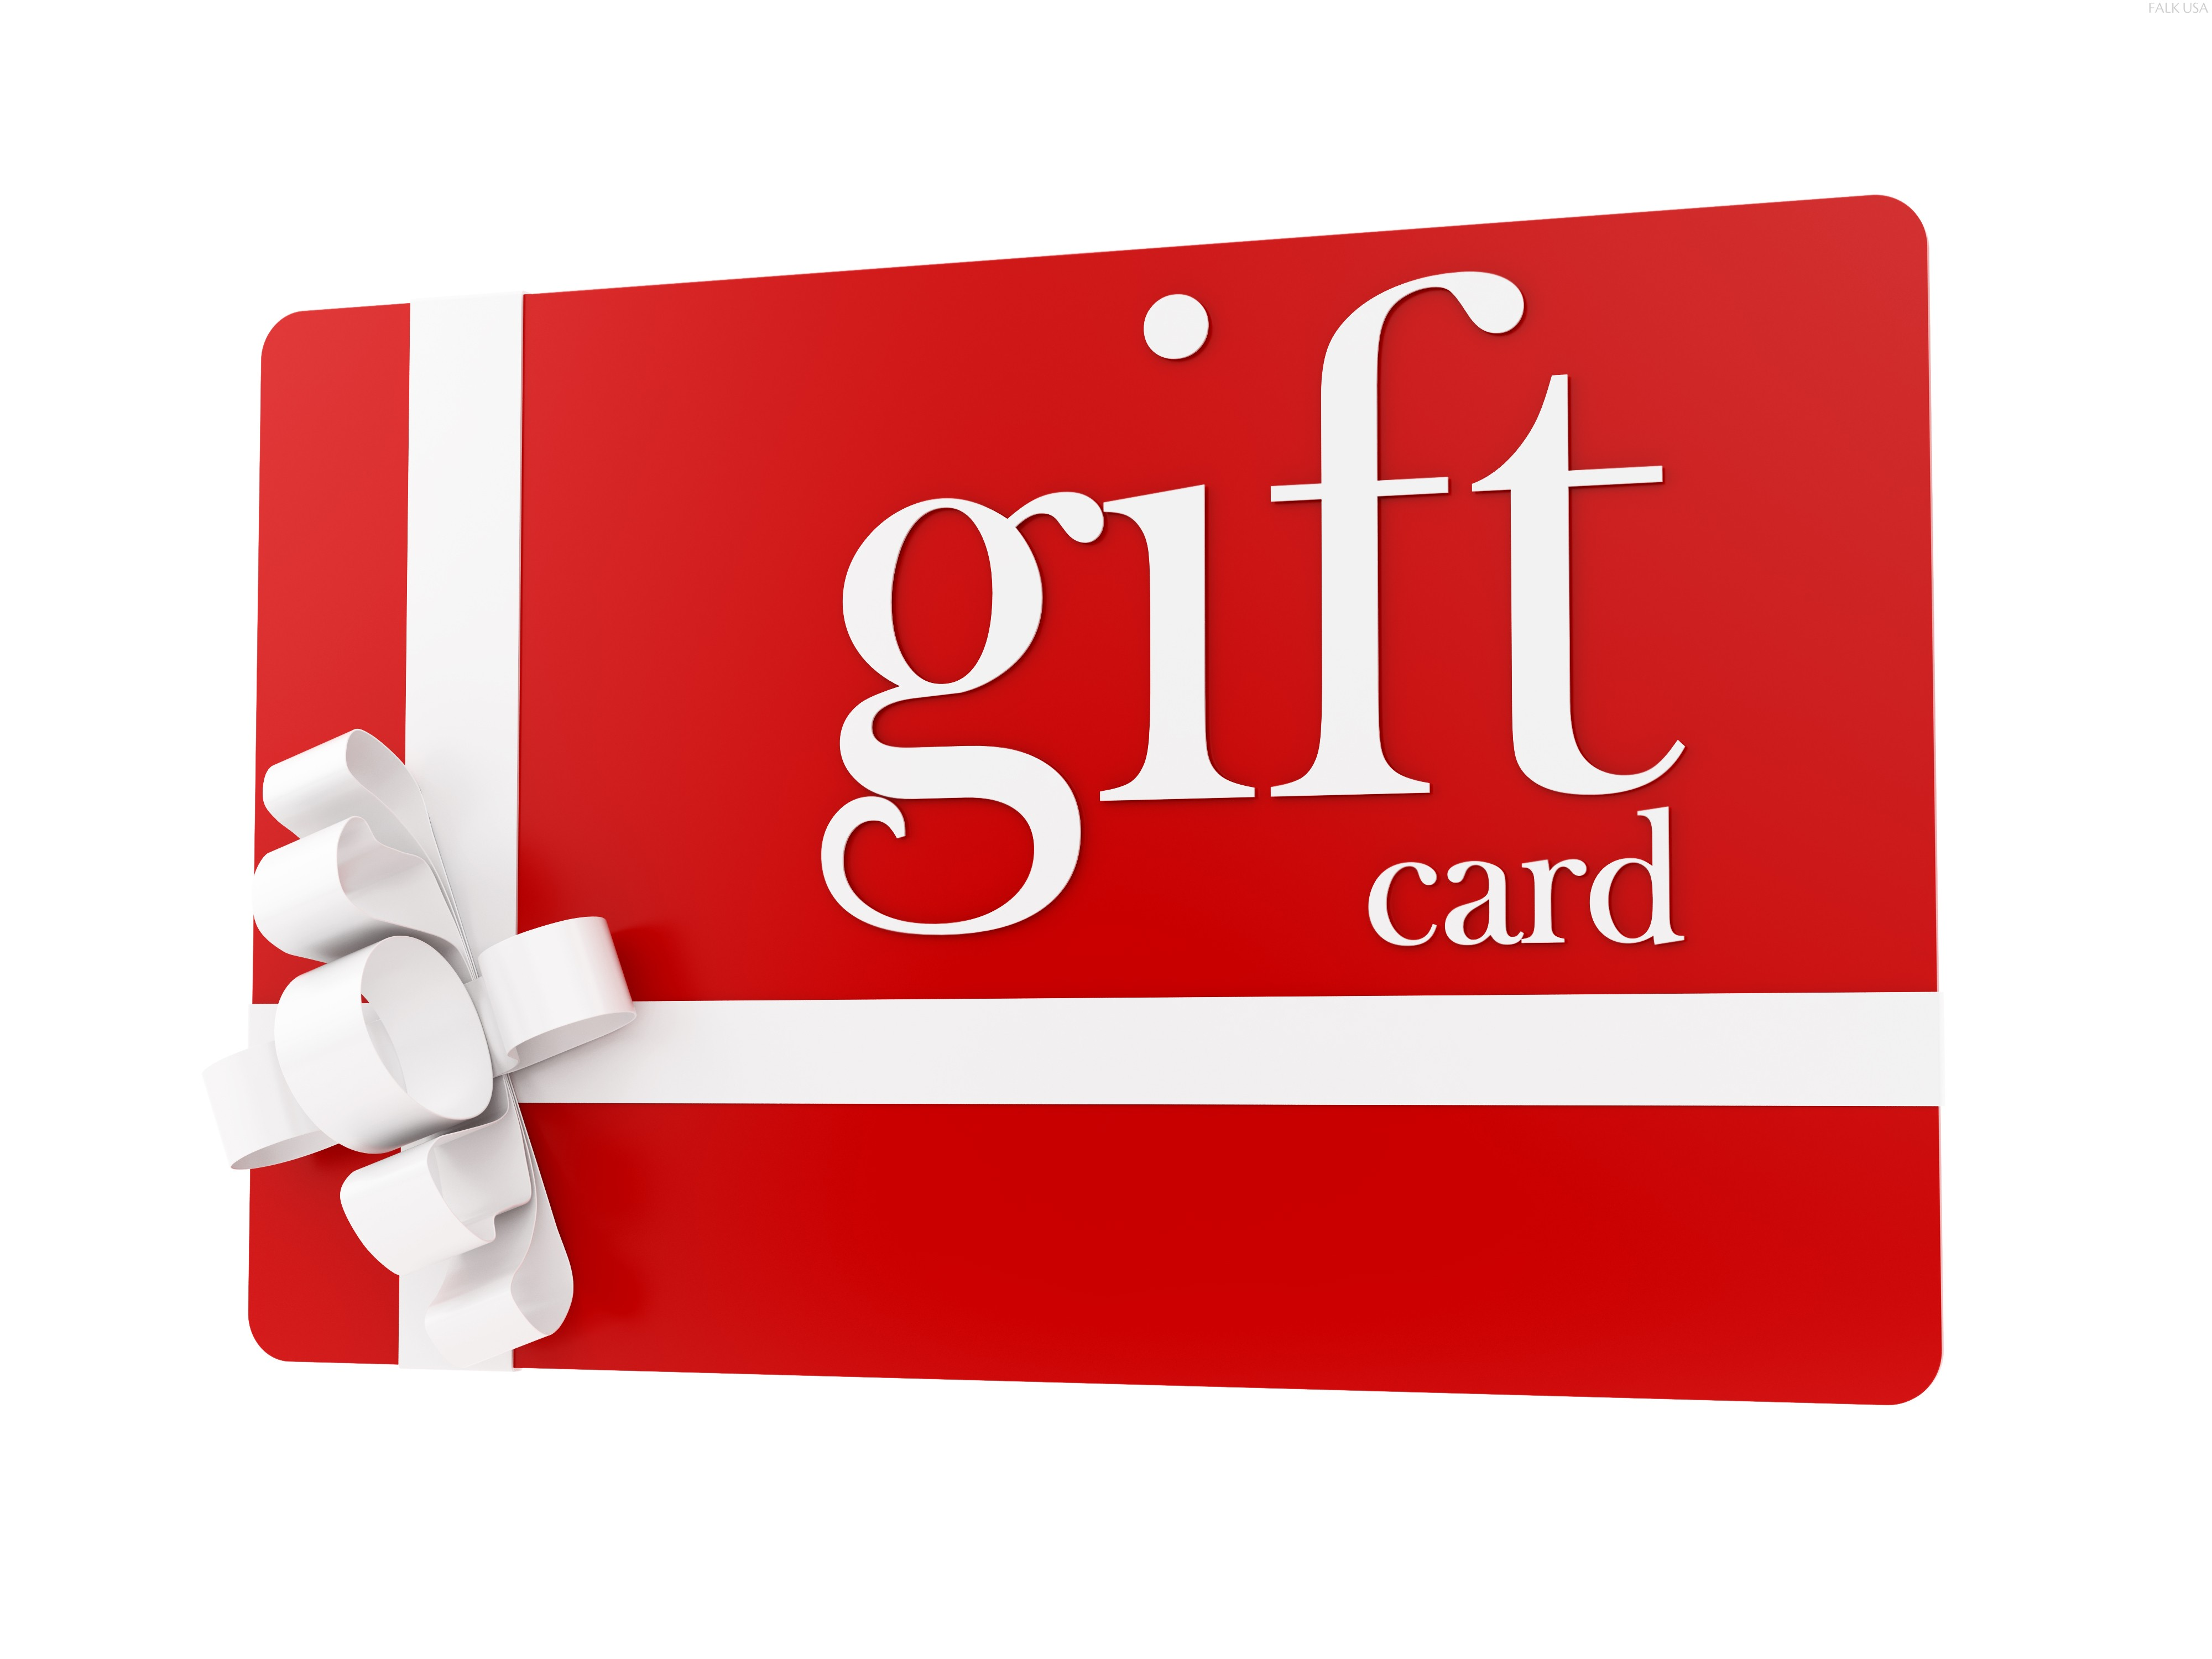 Say what you will about gift cards, but they make holiday shopping a lot easier. The days of guessing what someone really wants are over. Gift cards can be used for everything - shoes, sweaters, jeans, appliances, tools, home goods, and more.